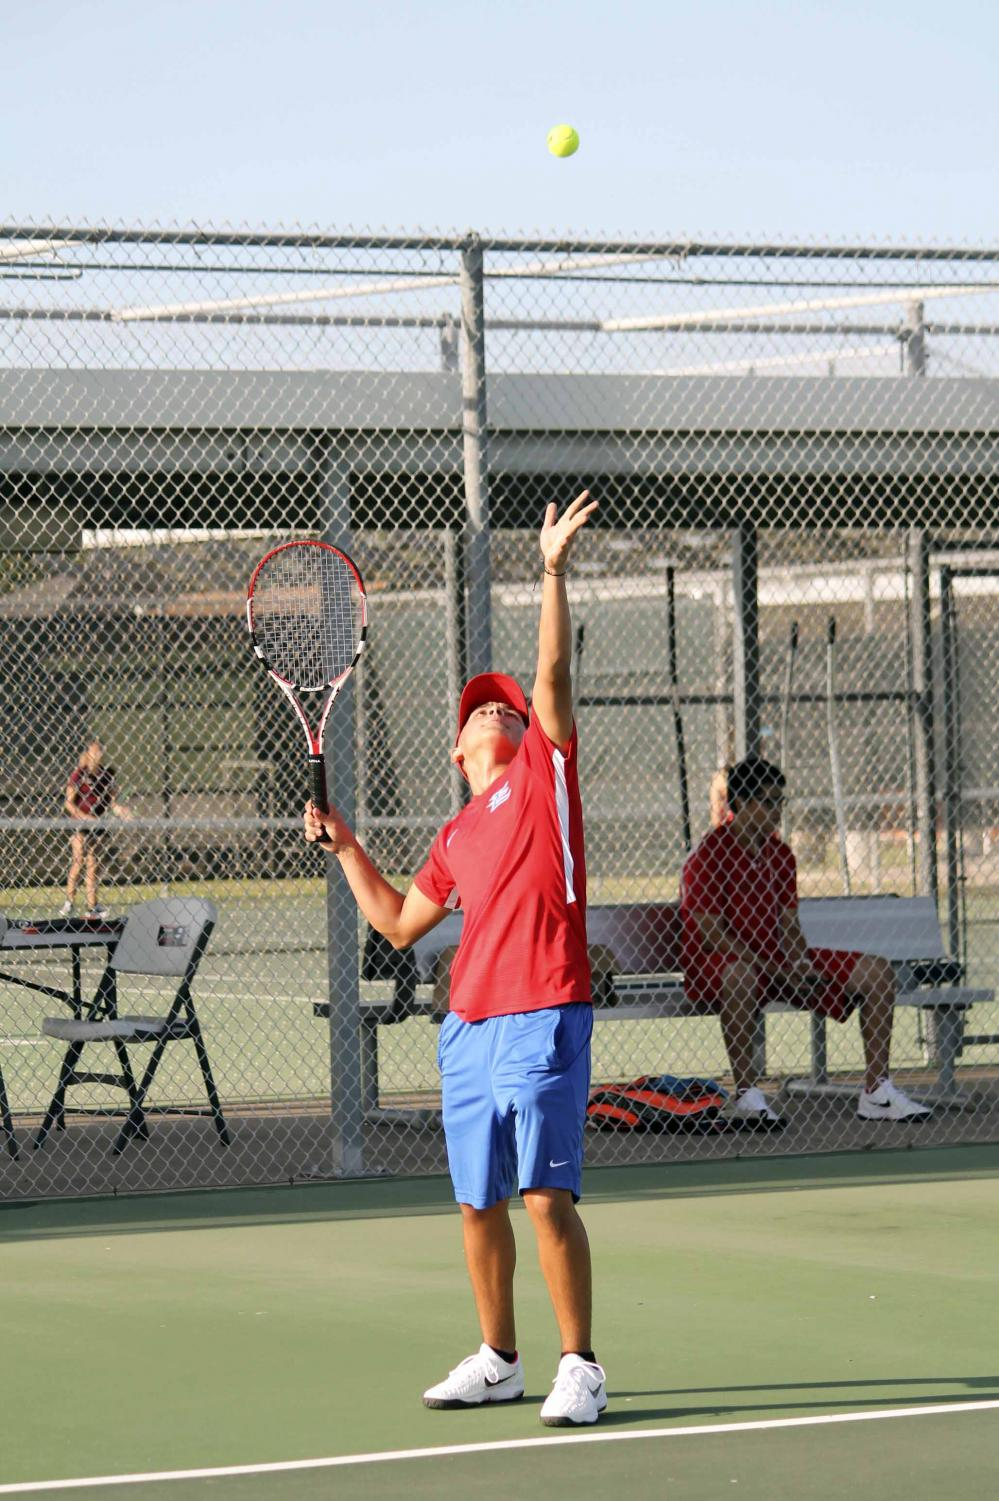 Junior Ricardo Cano serves  during the match against Donna North.